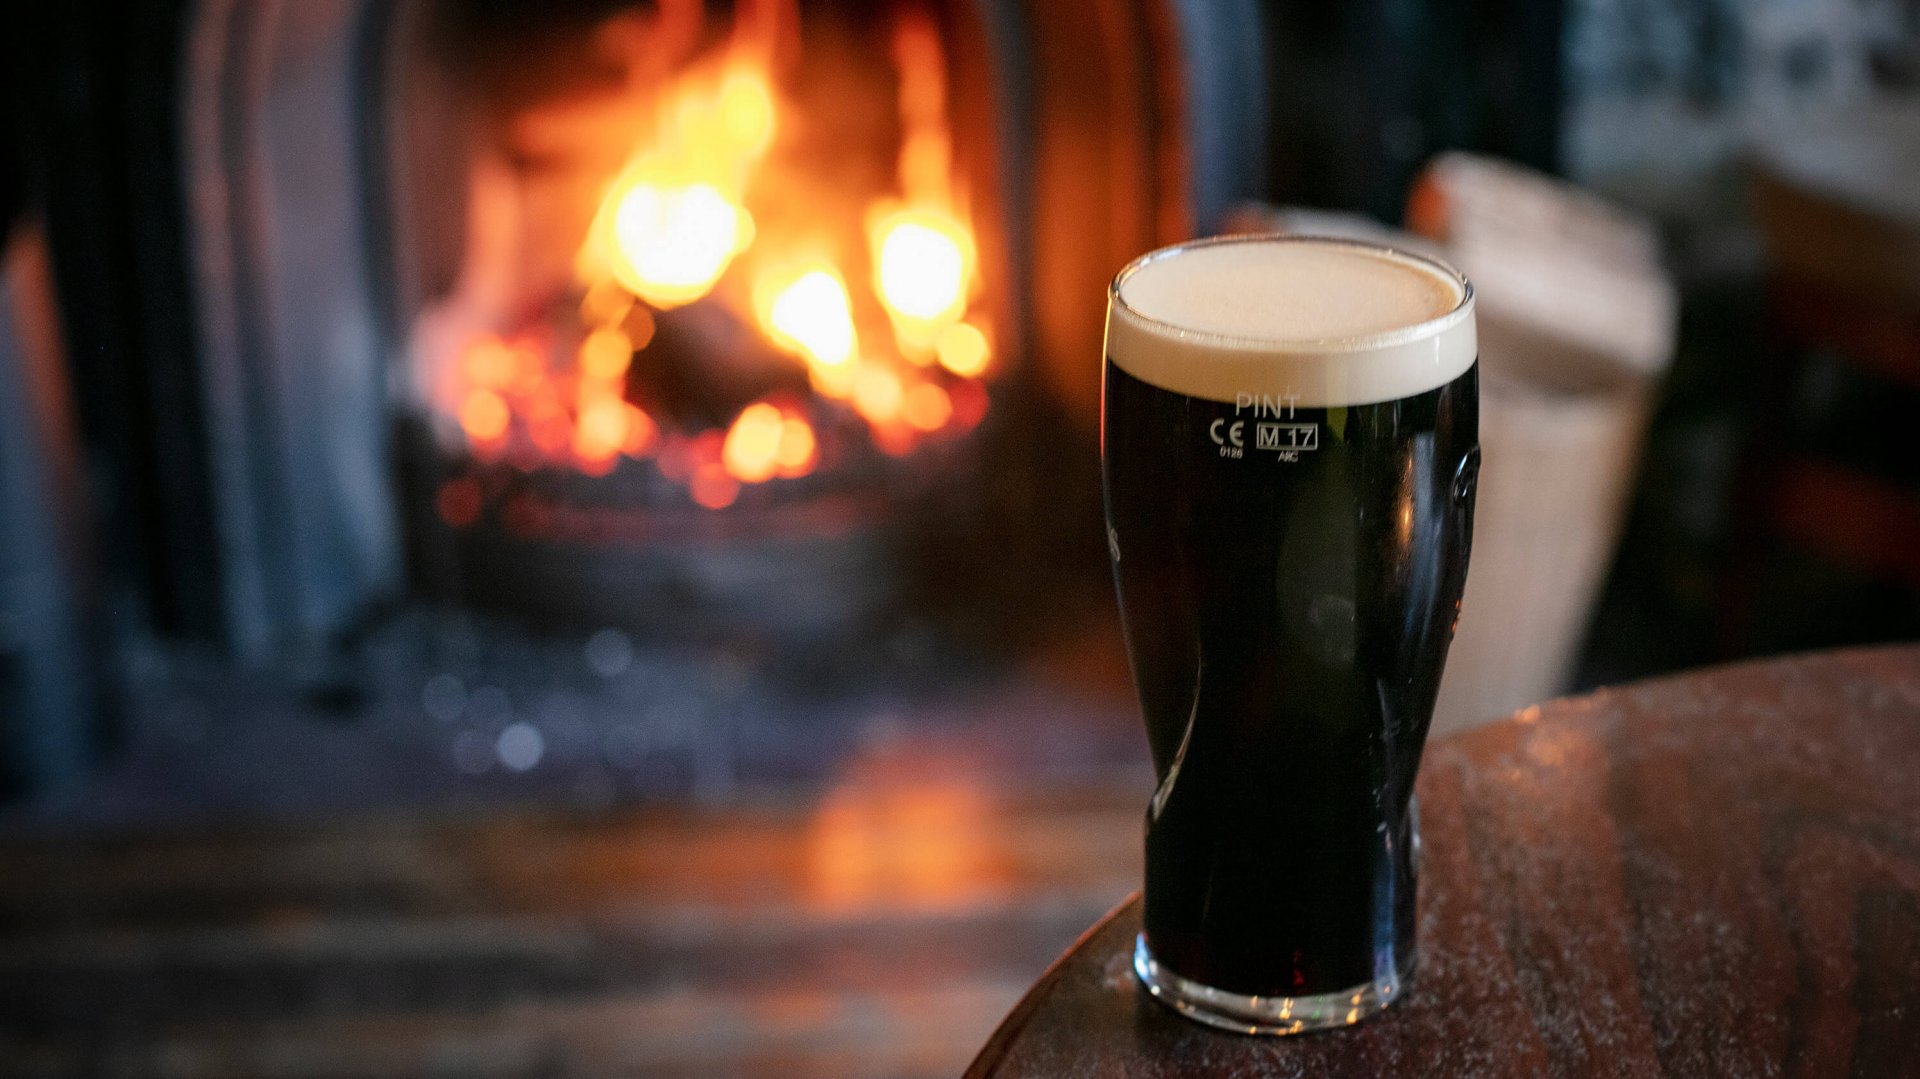 Pint of stout (probably Guinness or Murphy's) in front of a roaring fire in an Irish pub